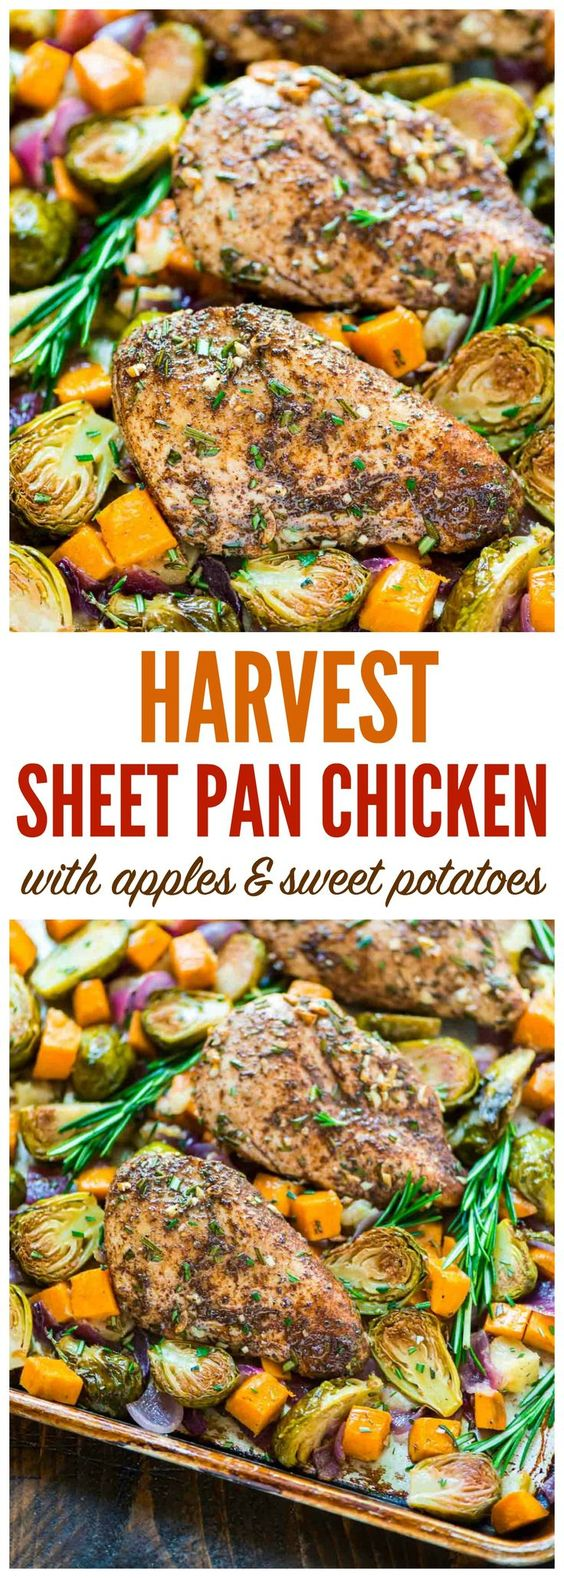 ONE PAN Paleo Harvest Chicken Dinner with Apples, Sweet Potatoes, and Brussels Sprouts Recipe via Well Plated by Erin - Easy and healthy sheet pan recipe that's perfect for busy weeknights! {paleo, whole 30, gluten free, dairy free} #sheetpansuppers #sheetpanrecipes #sheetpandinners #onepanmeals #healthyrecipes #mealprep #easyrecipes #healthydinners #healthysuppers #healthylunches #simplefamilymeals #simplefamilyrecipes #simplerecipes